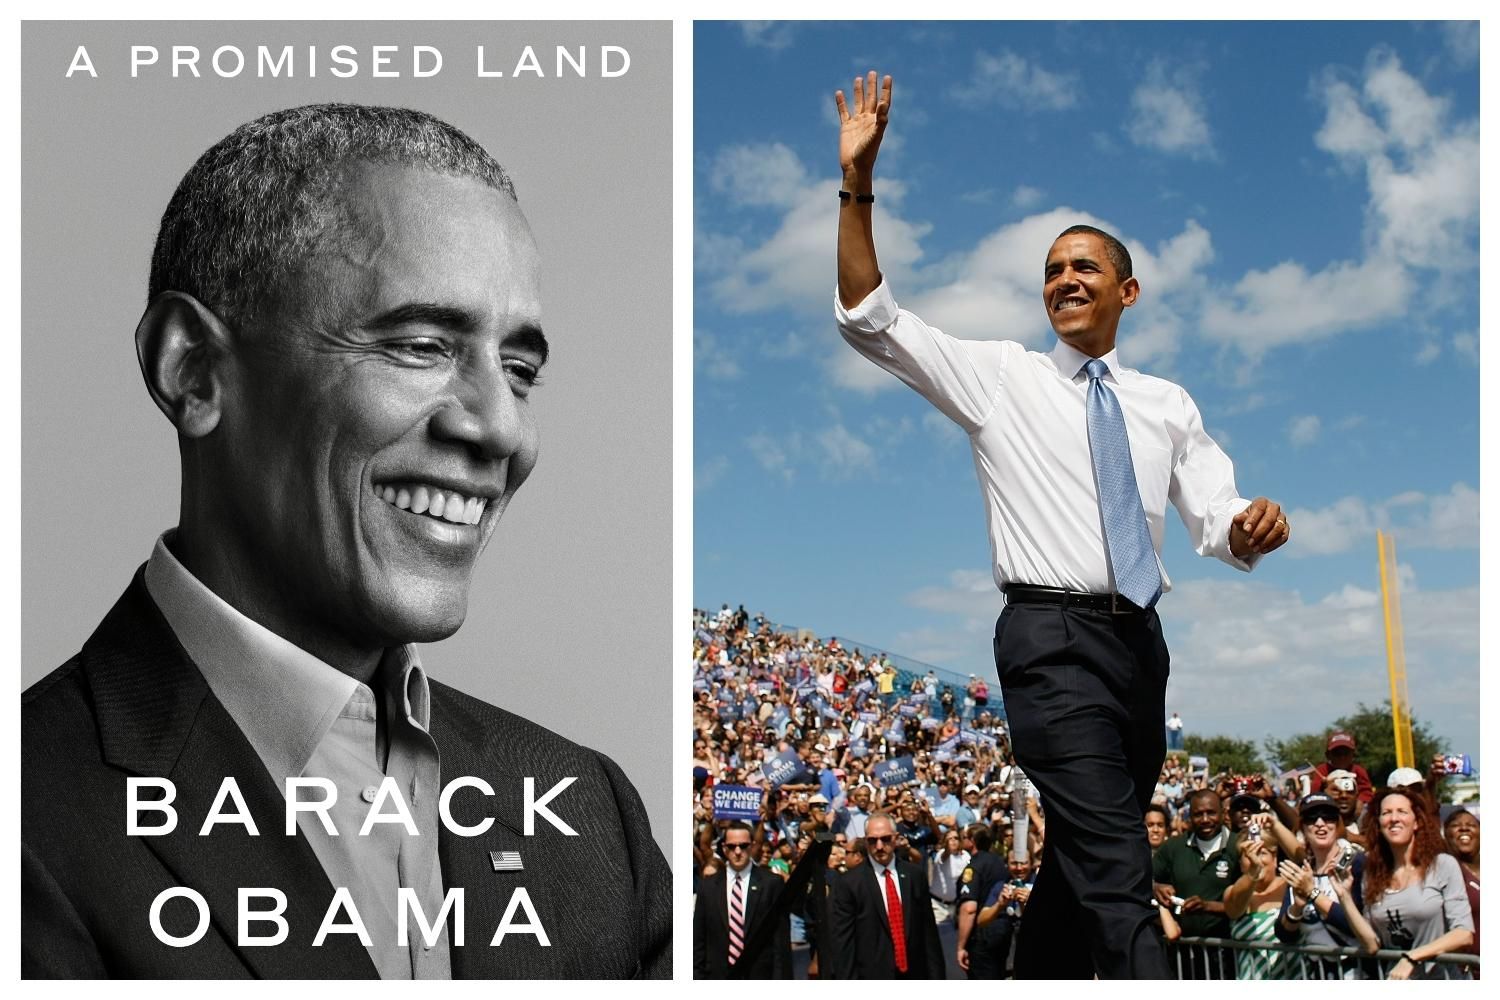 a-promised-land-obama-main-2